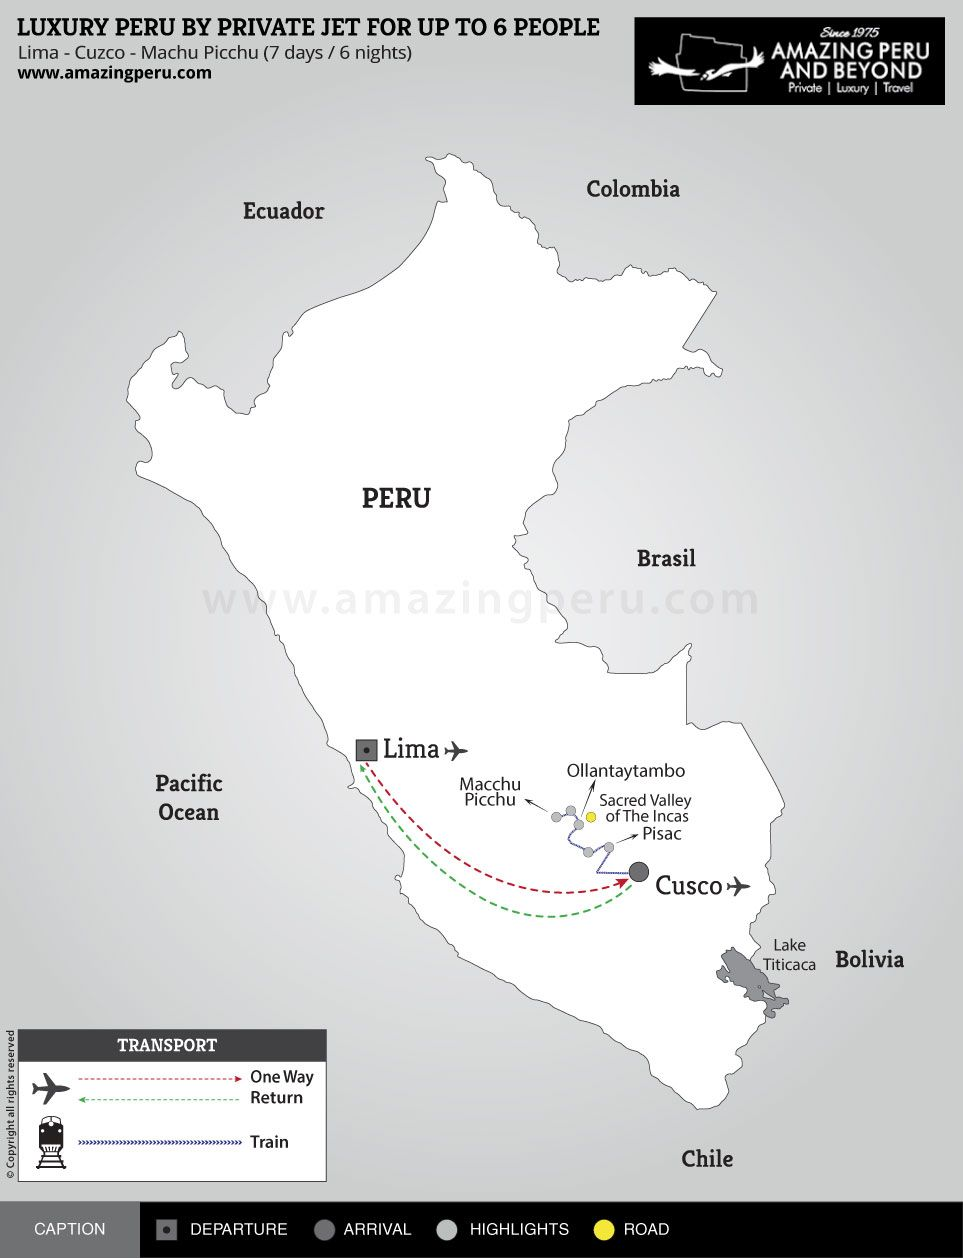 Luxury Peru by Private Jet for up to 6 People - 7 days / 6 nights.